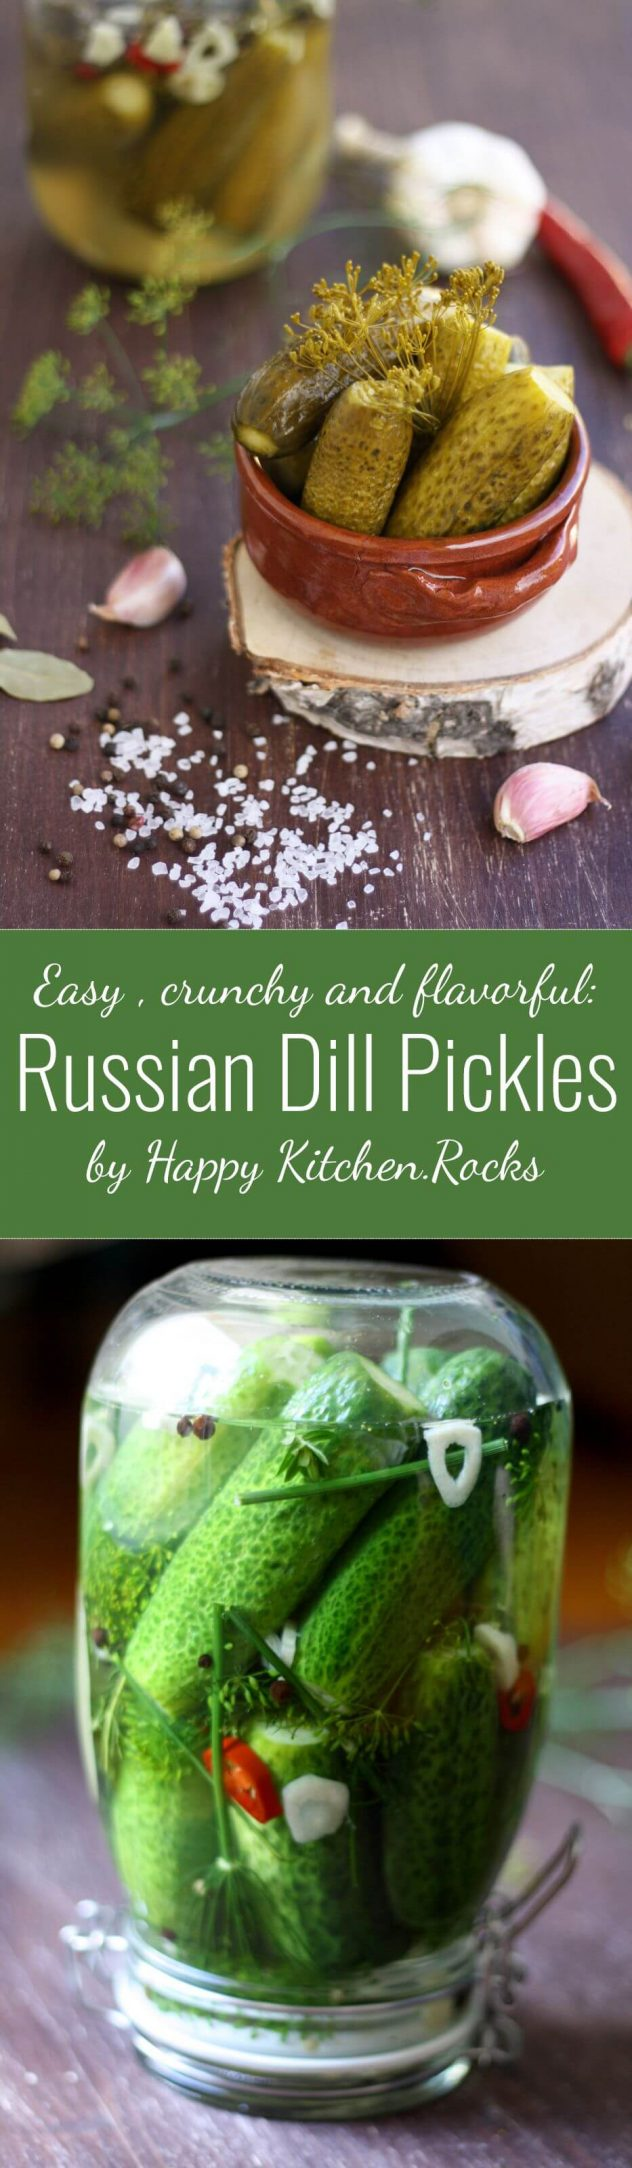 An easy family recipe of Russian Dill Pickles (солёные огурцы) with herbs, garlic and peppercorns. A healthy, crunchy and refreshing appetizer you will love!